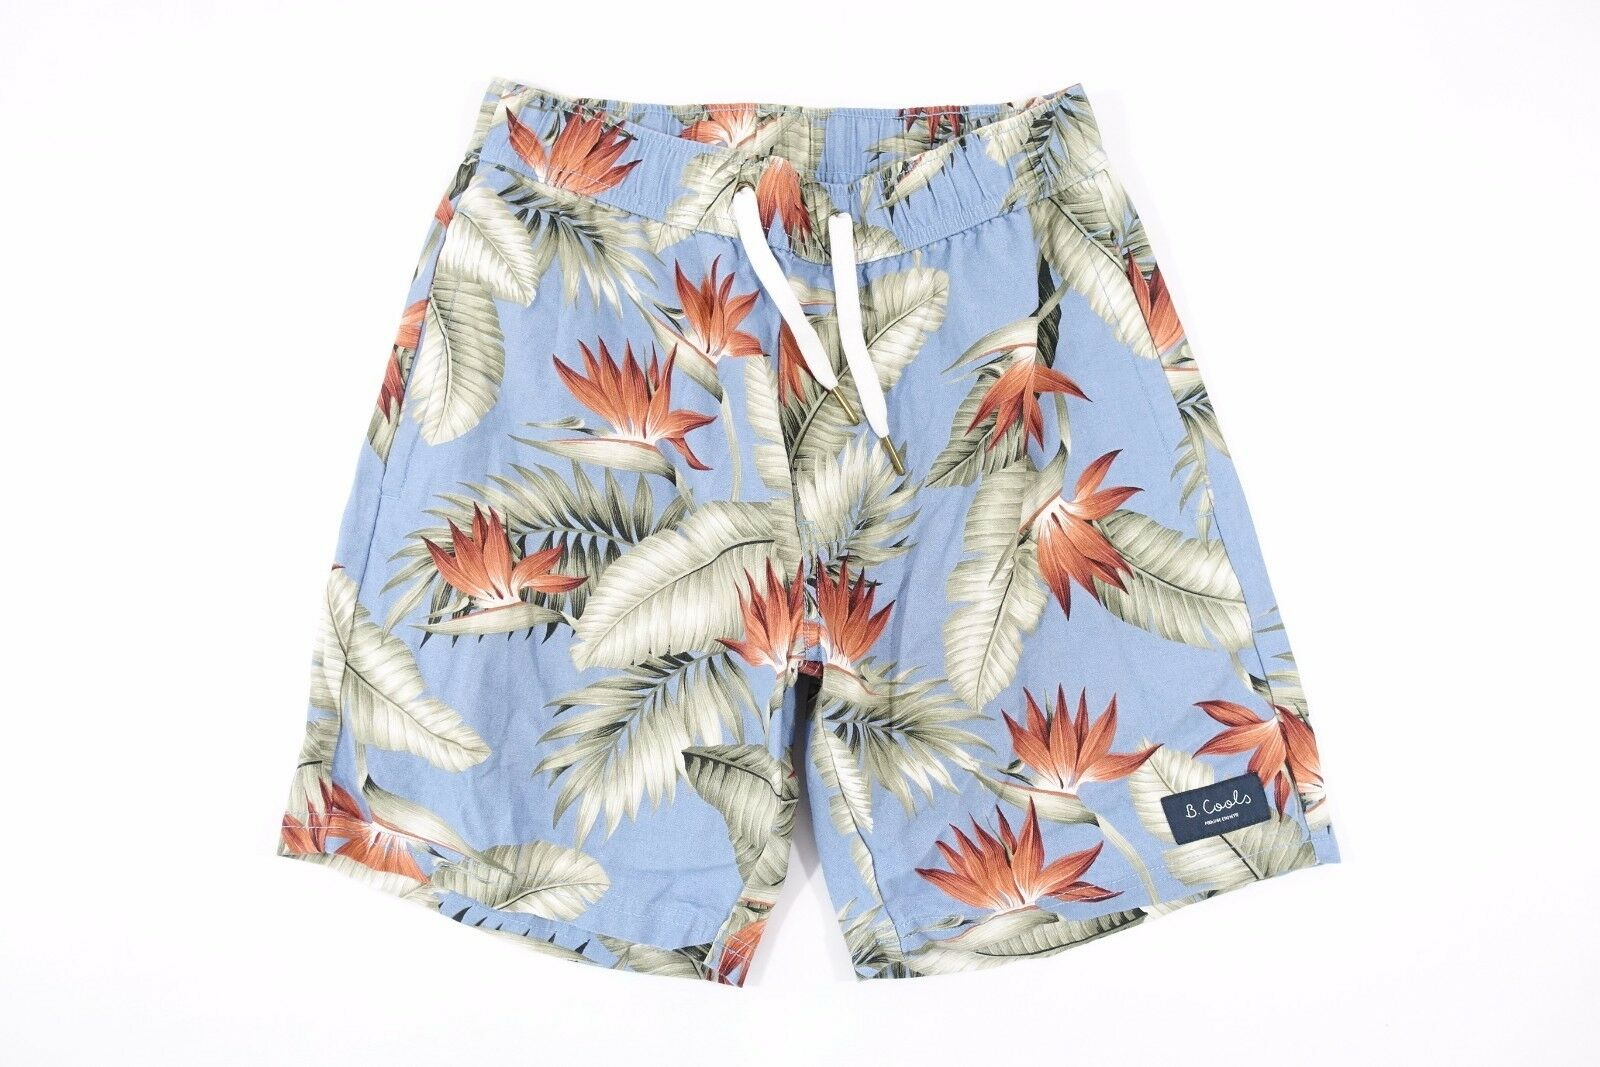 BARNEY COOL HAWAIIAN FLORAL blueE 30 LINEN BLEND DRAW STRING SHORTS MENS NEW